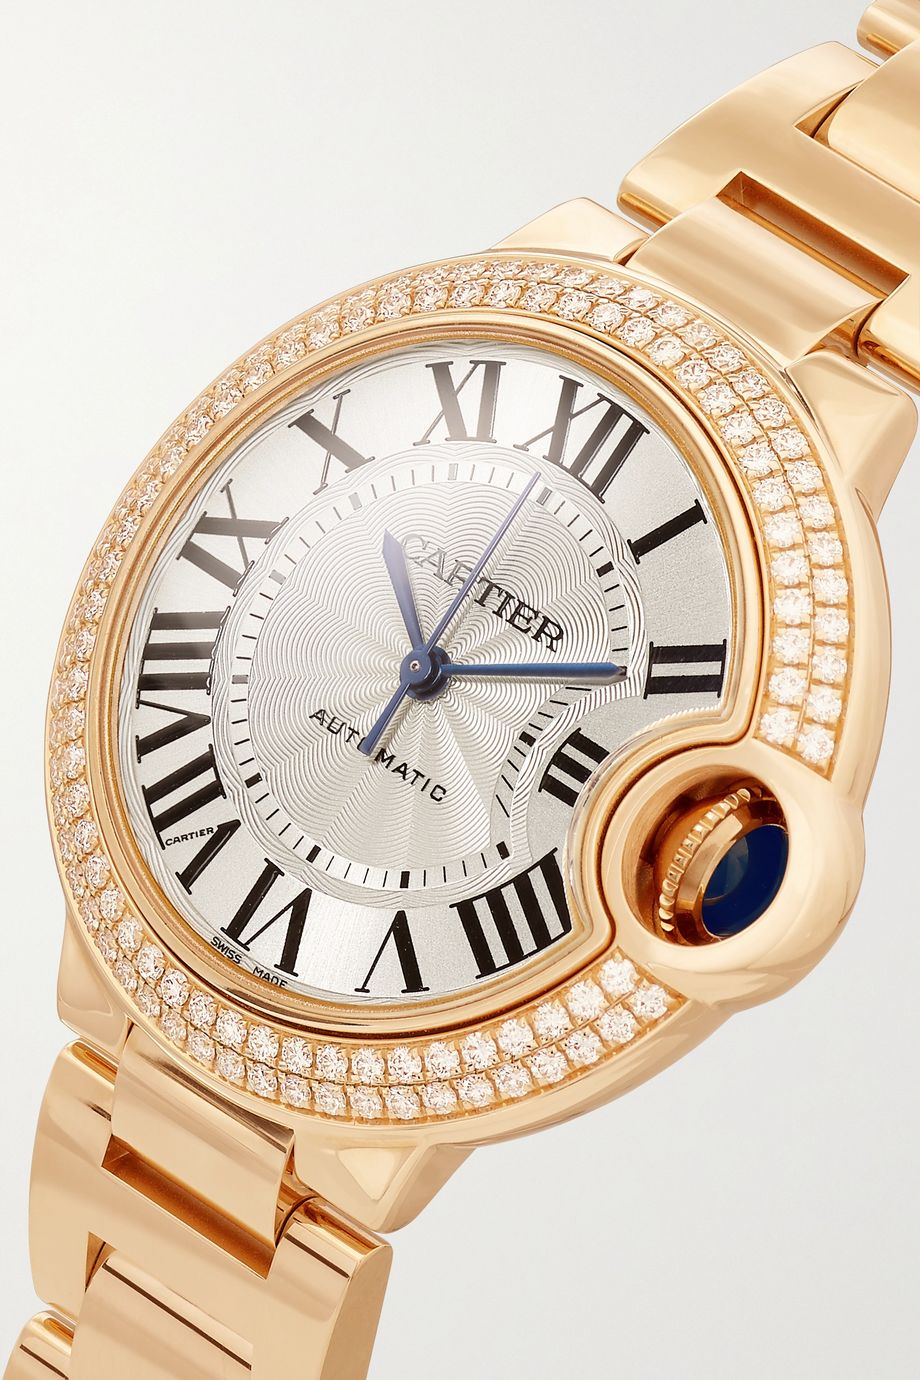 Cartier Ballon Bleu de Cartier Automatic 36mm 18-karat rose gold and diamond watch